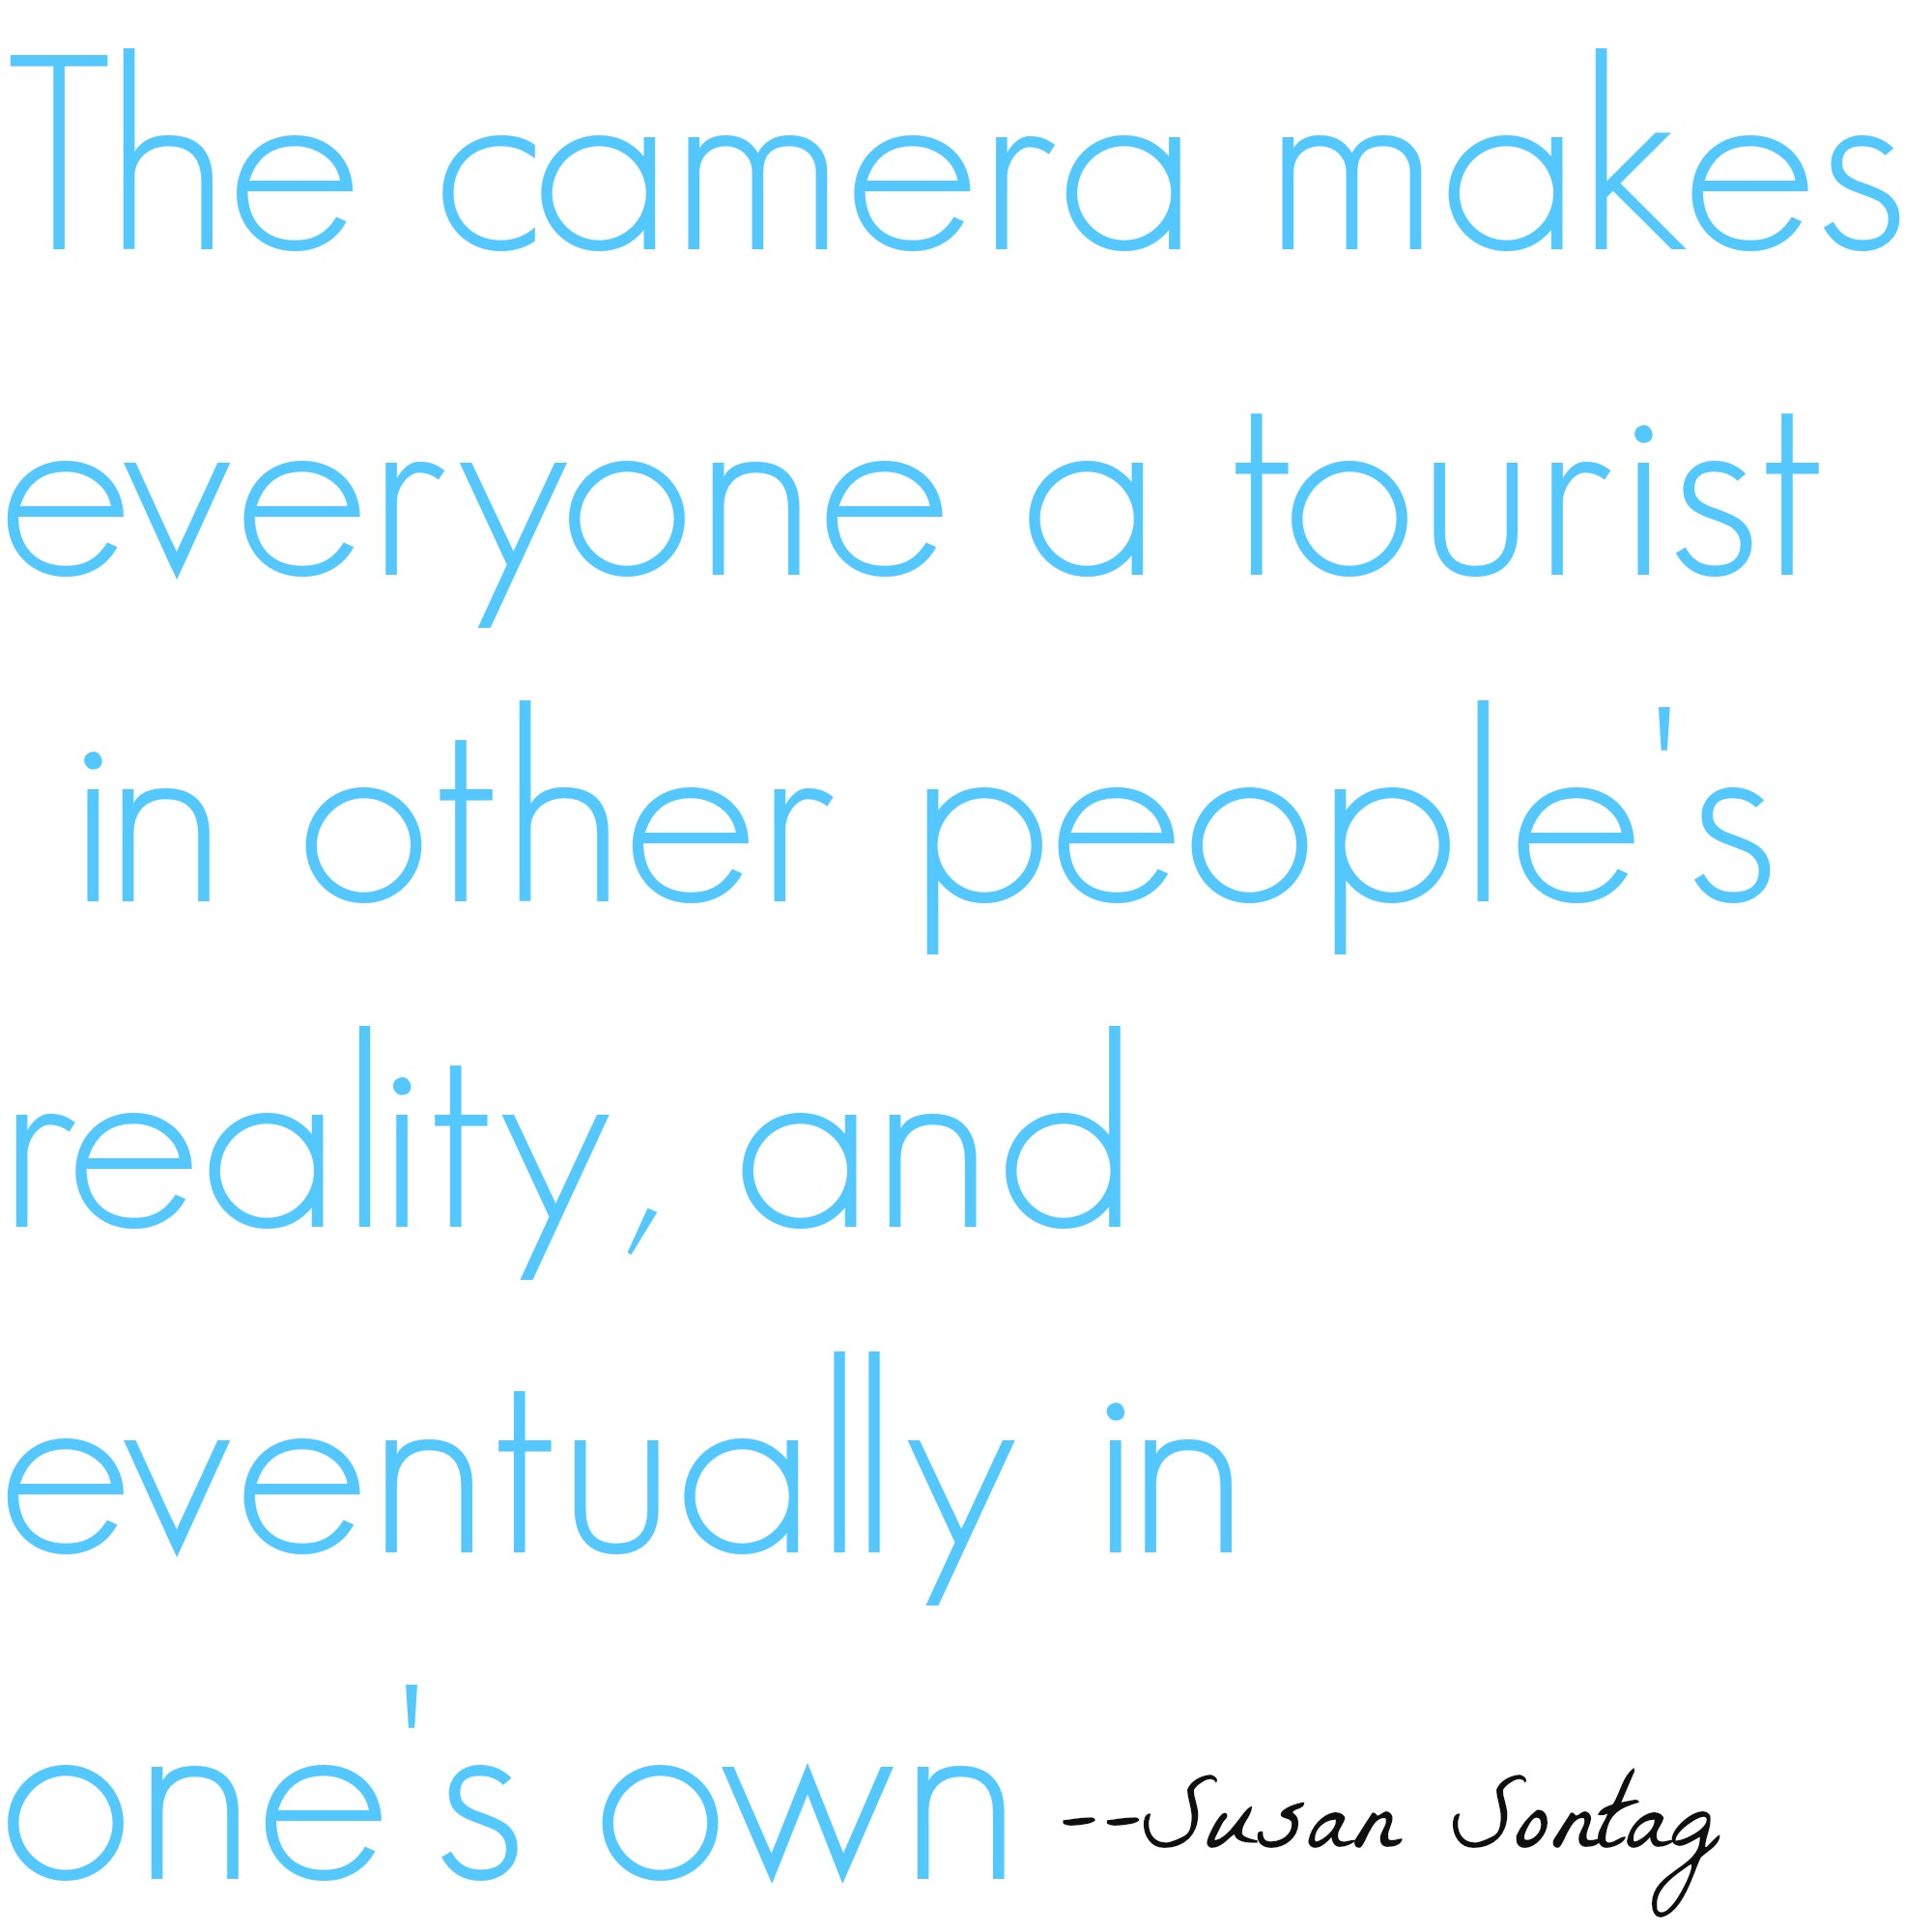 The camera makes everyone a tourist in other people's reality, and eventually in one's own